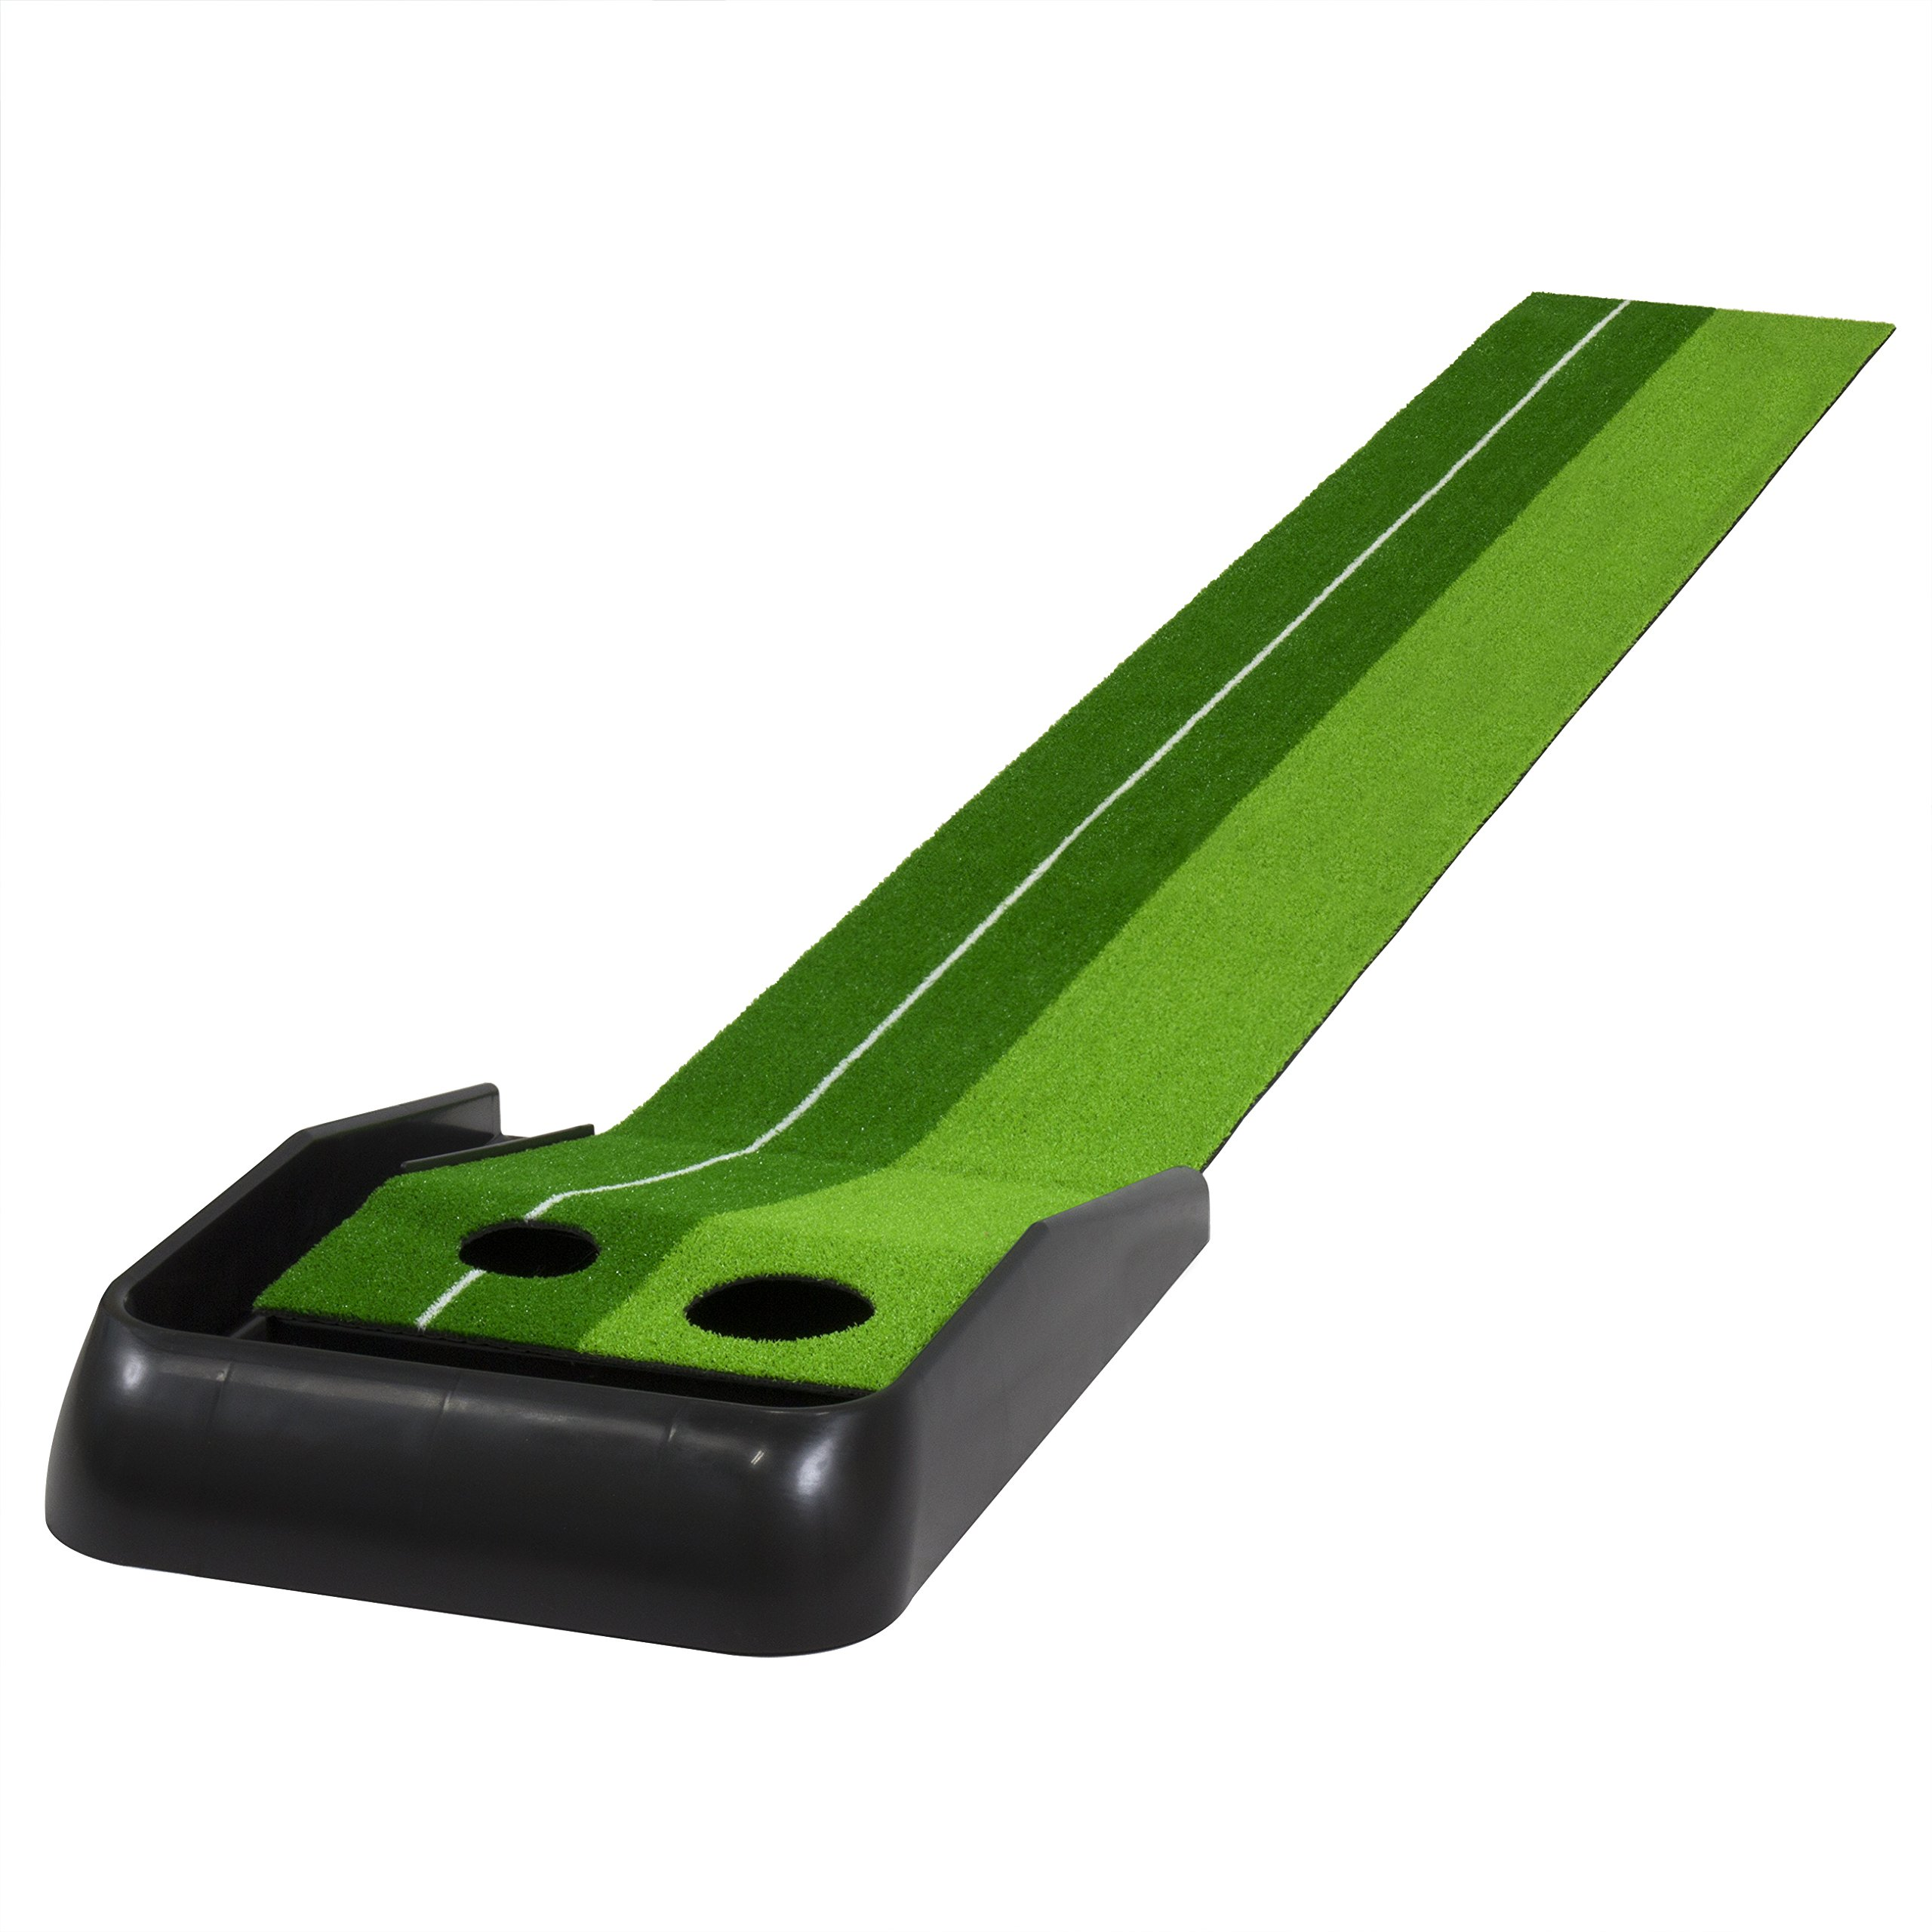 Best Choice Products Indoor Training 8 Ft. Golf Practice Putting Green Mat W/Ball Return